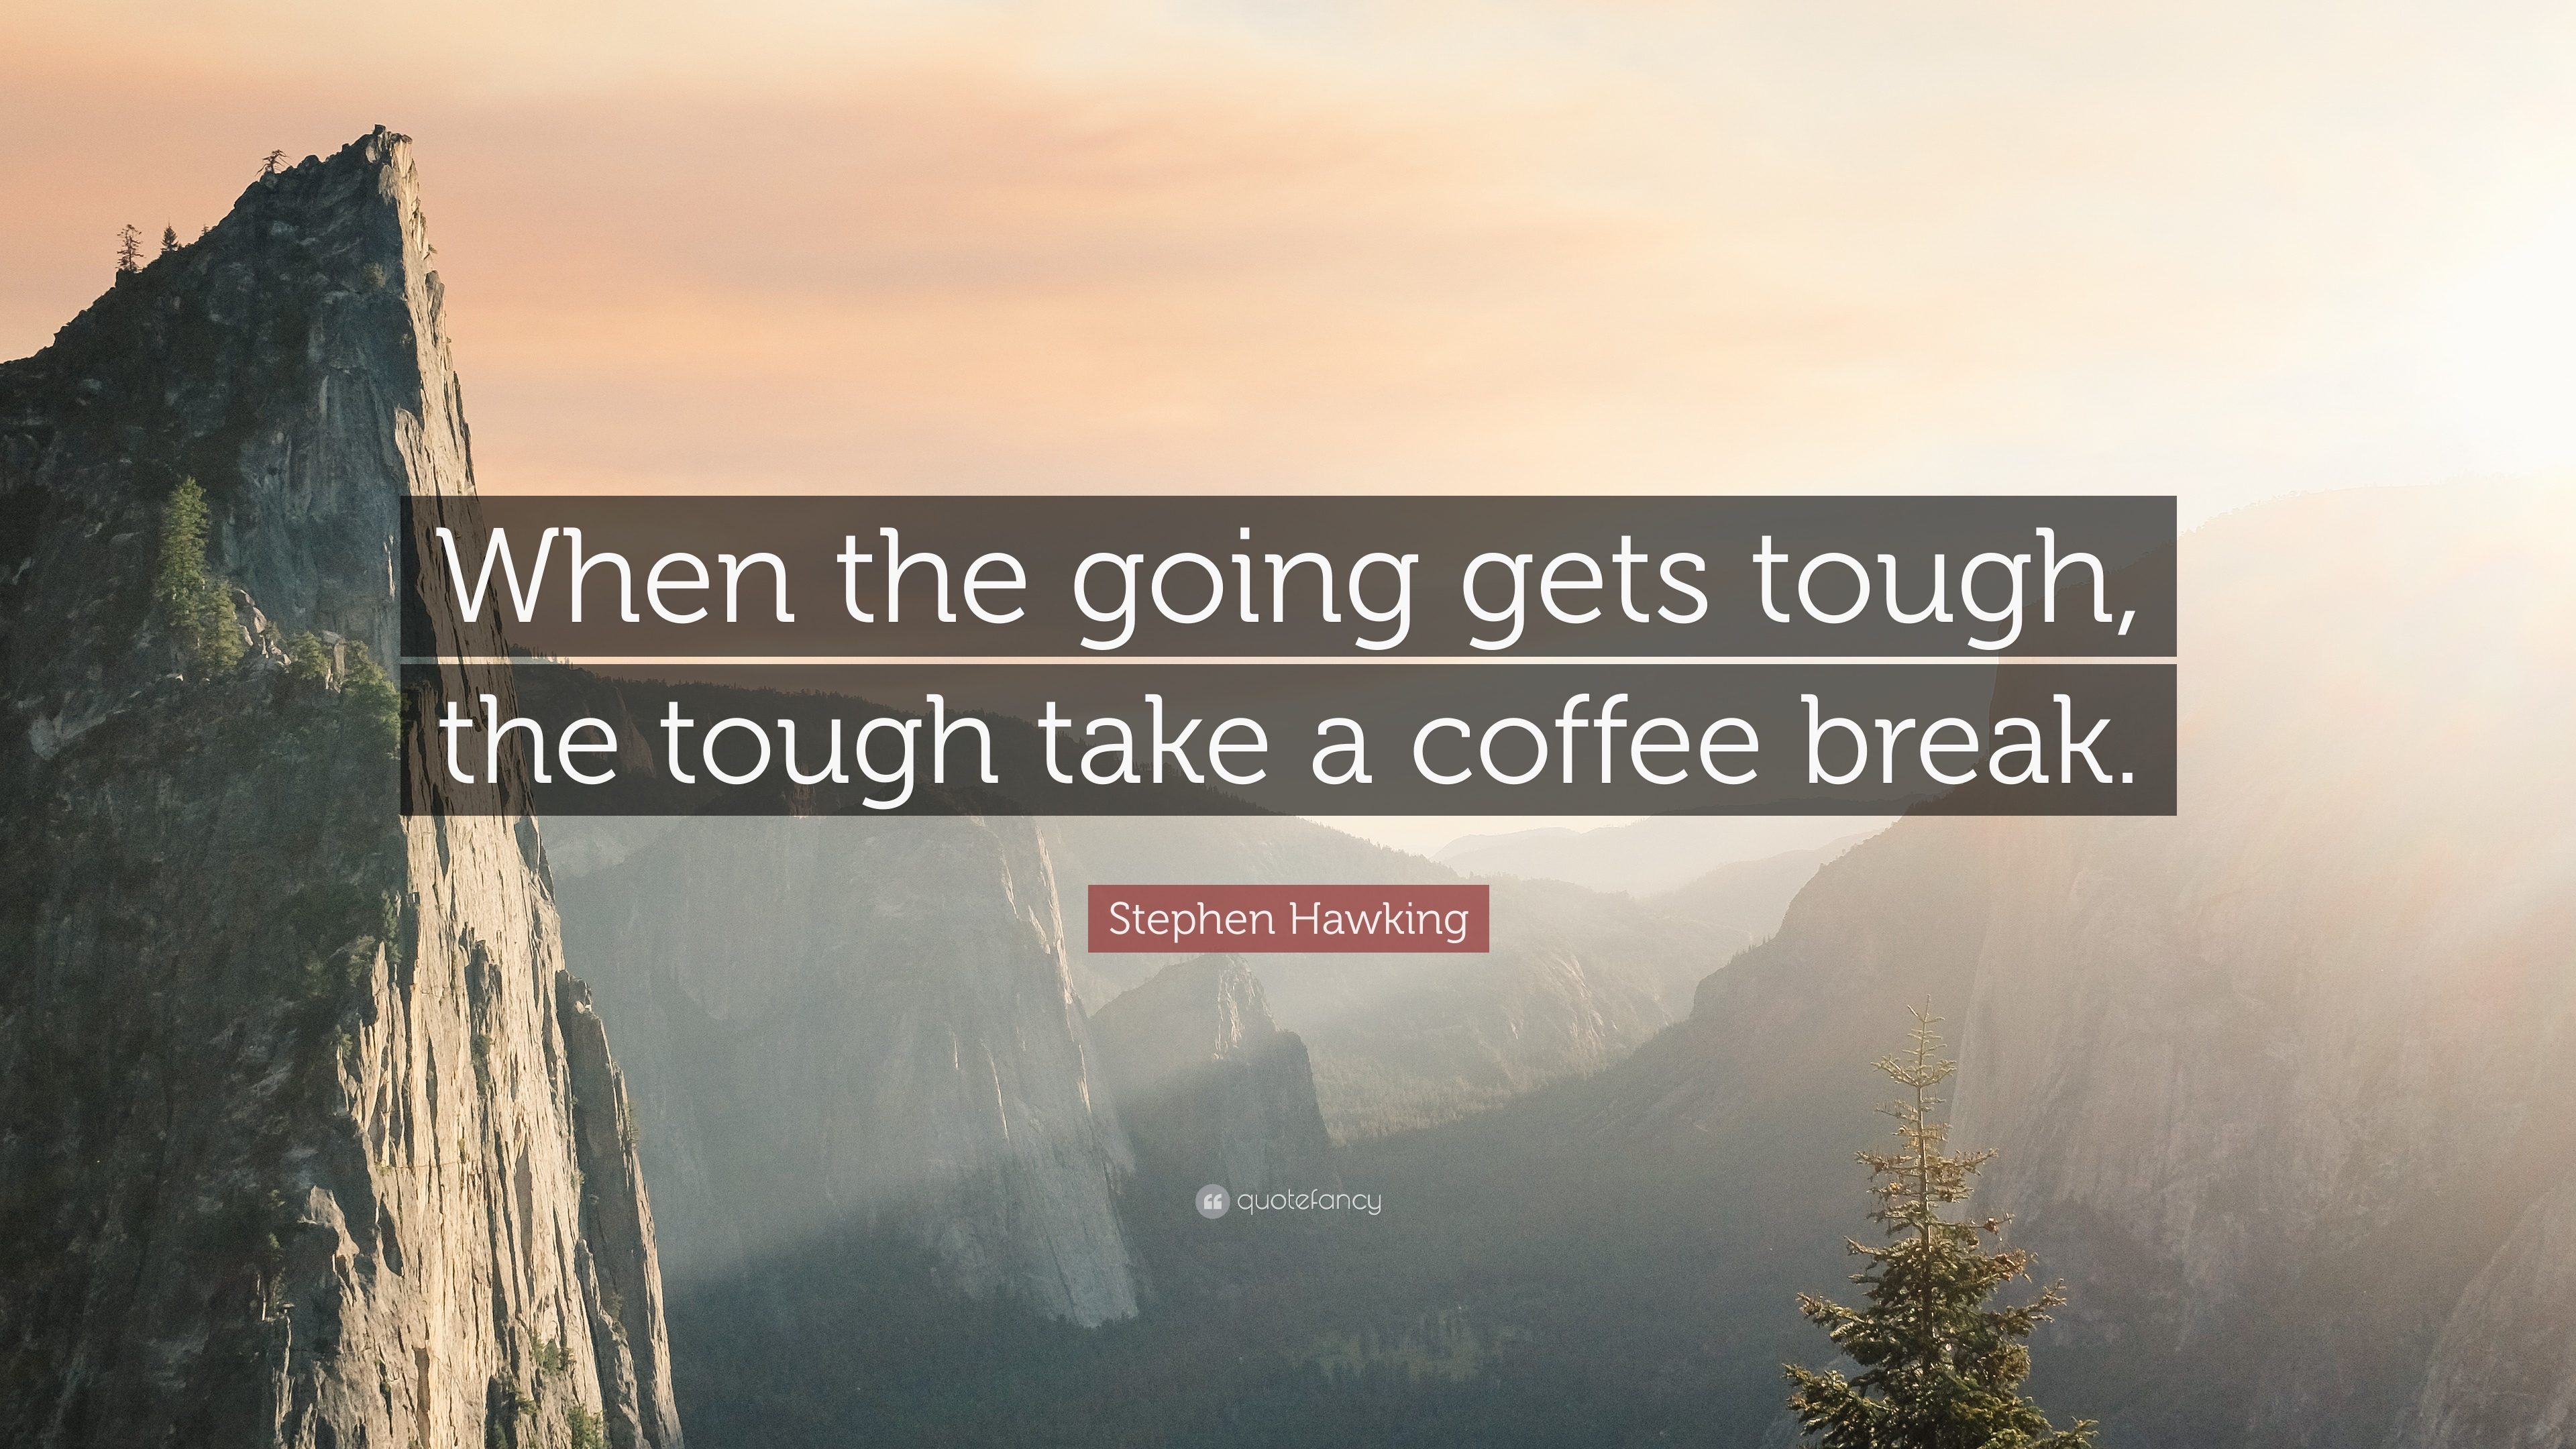 Stephen Hawking Quote When The Going Gets Tough The Tough Take A